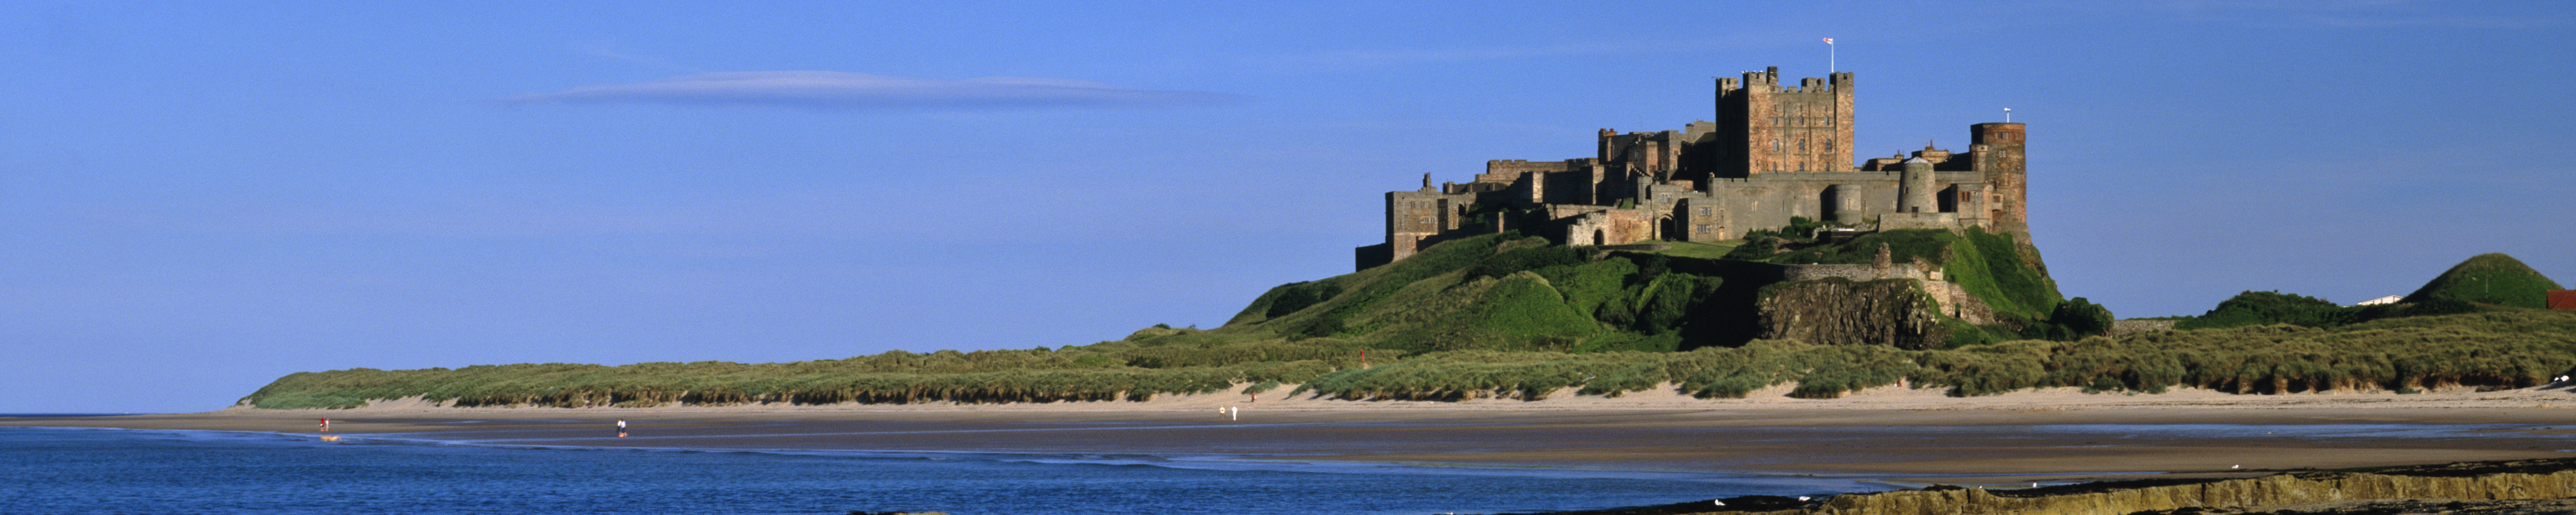 bamburgh castle - photo #41